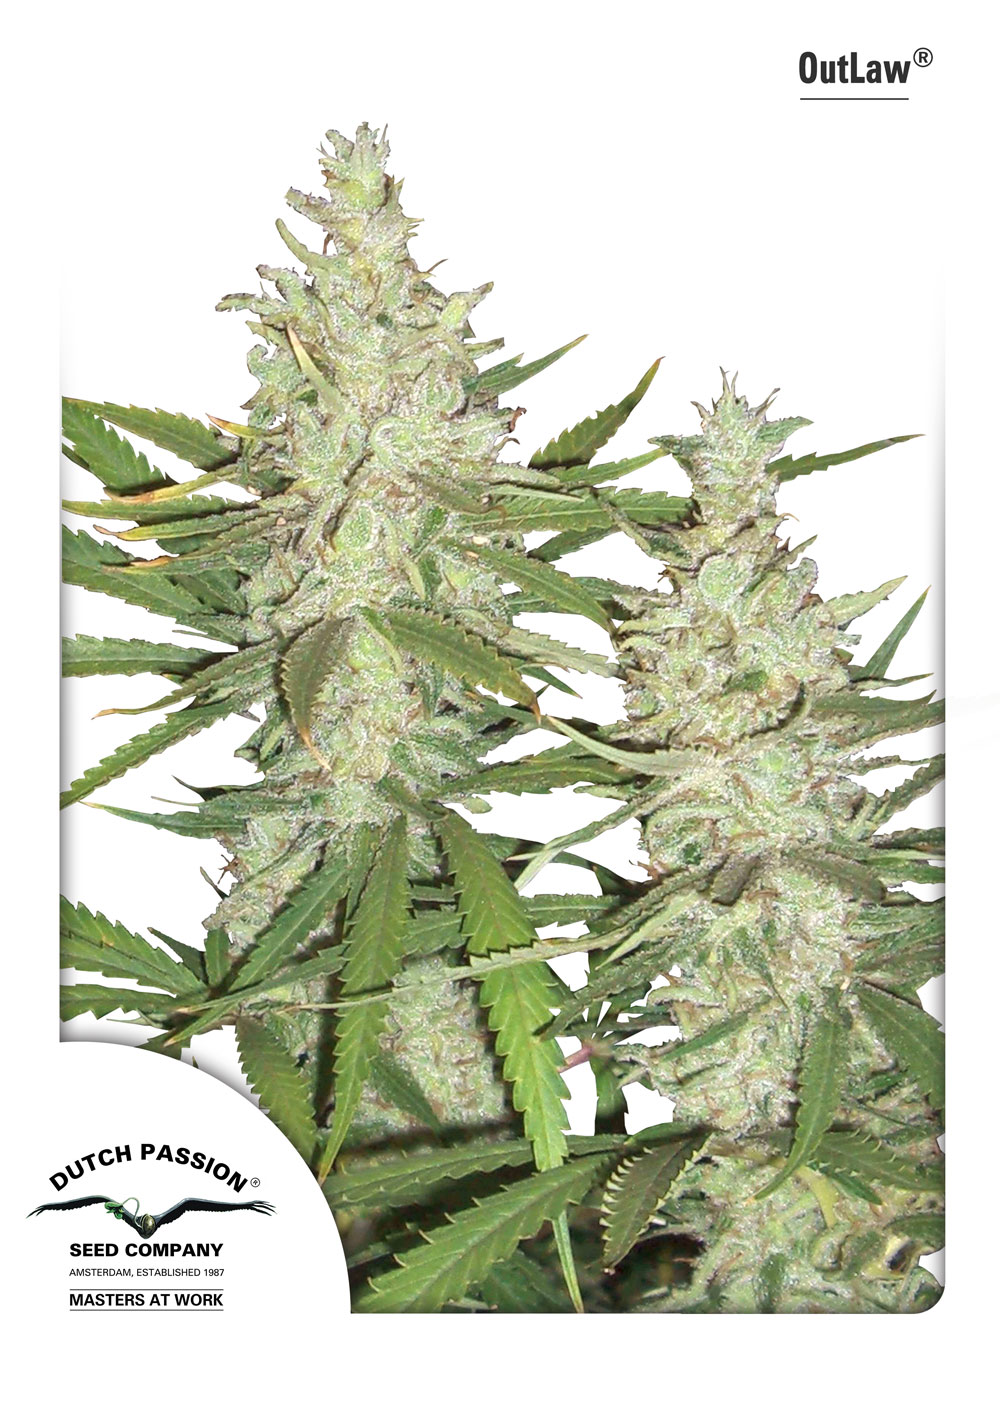 Recenzja Odmiany OutLaw od Dutch Passion, Dutch Seeds